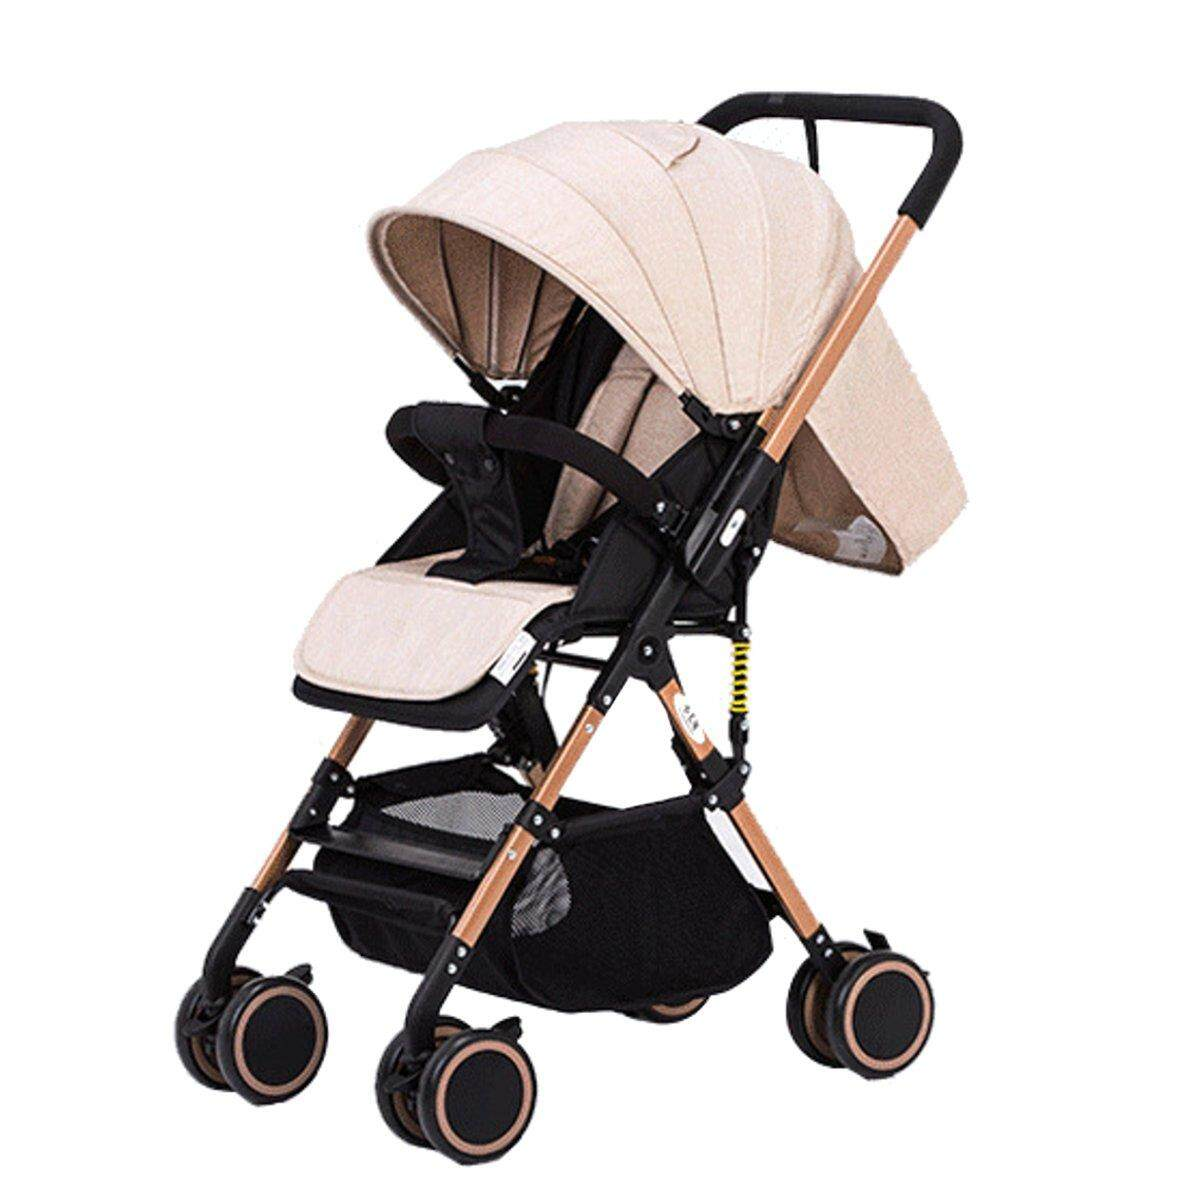 Baby Stroller Khaki Aluminum Alloy Lightweight Folding Four Wheel Cart By Audew.